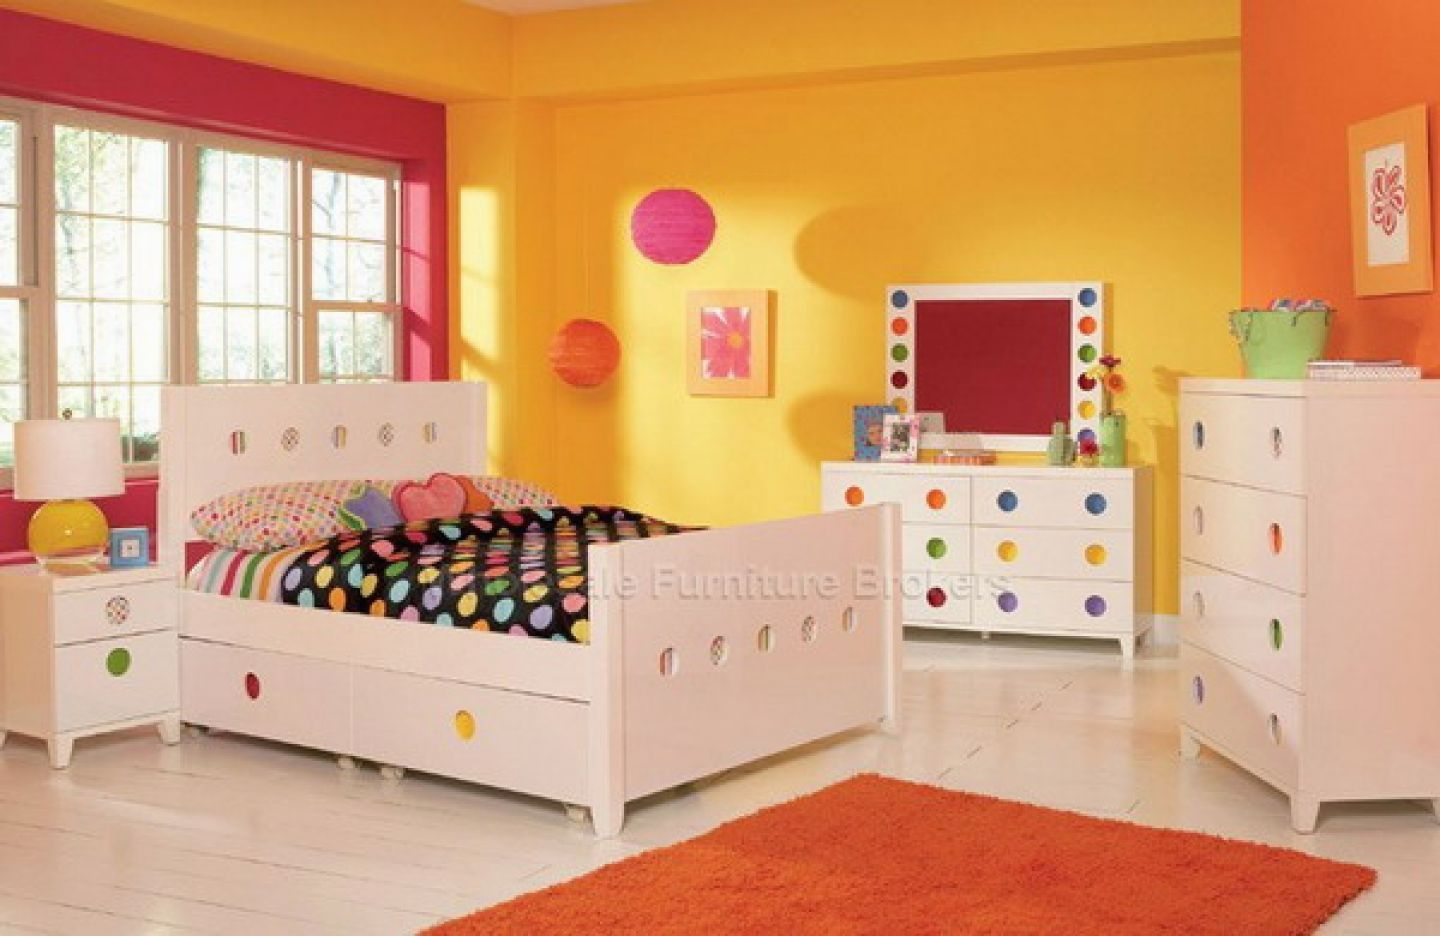 Delightful Fresh Design Ideas For Girls Bedroom Over Interior Design Girls Bedroom .